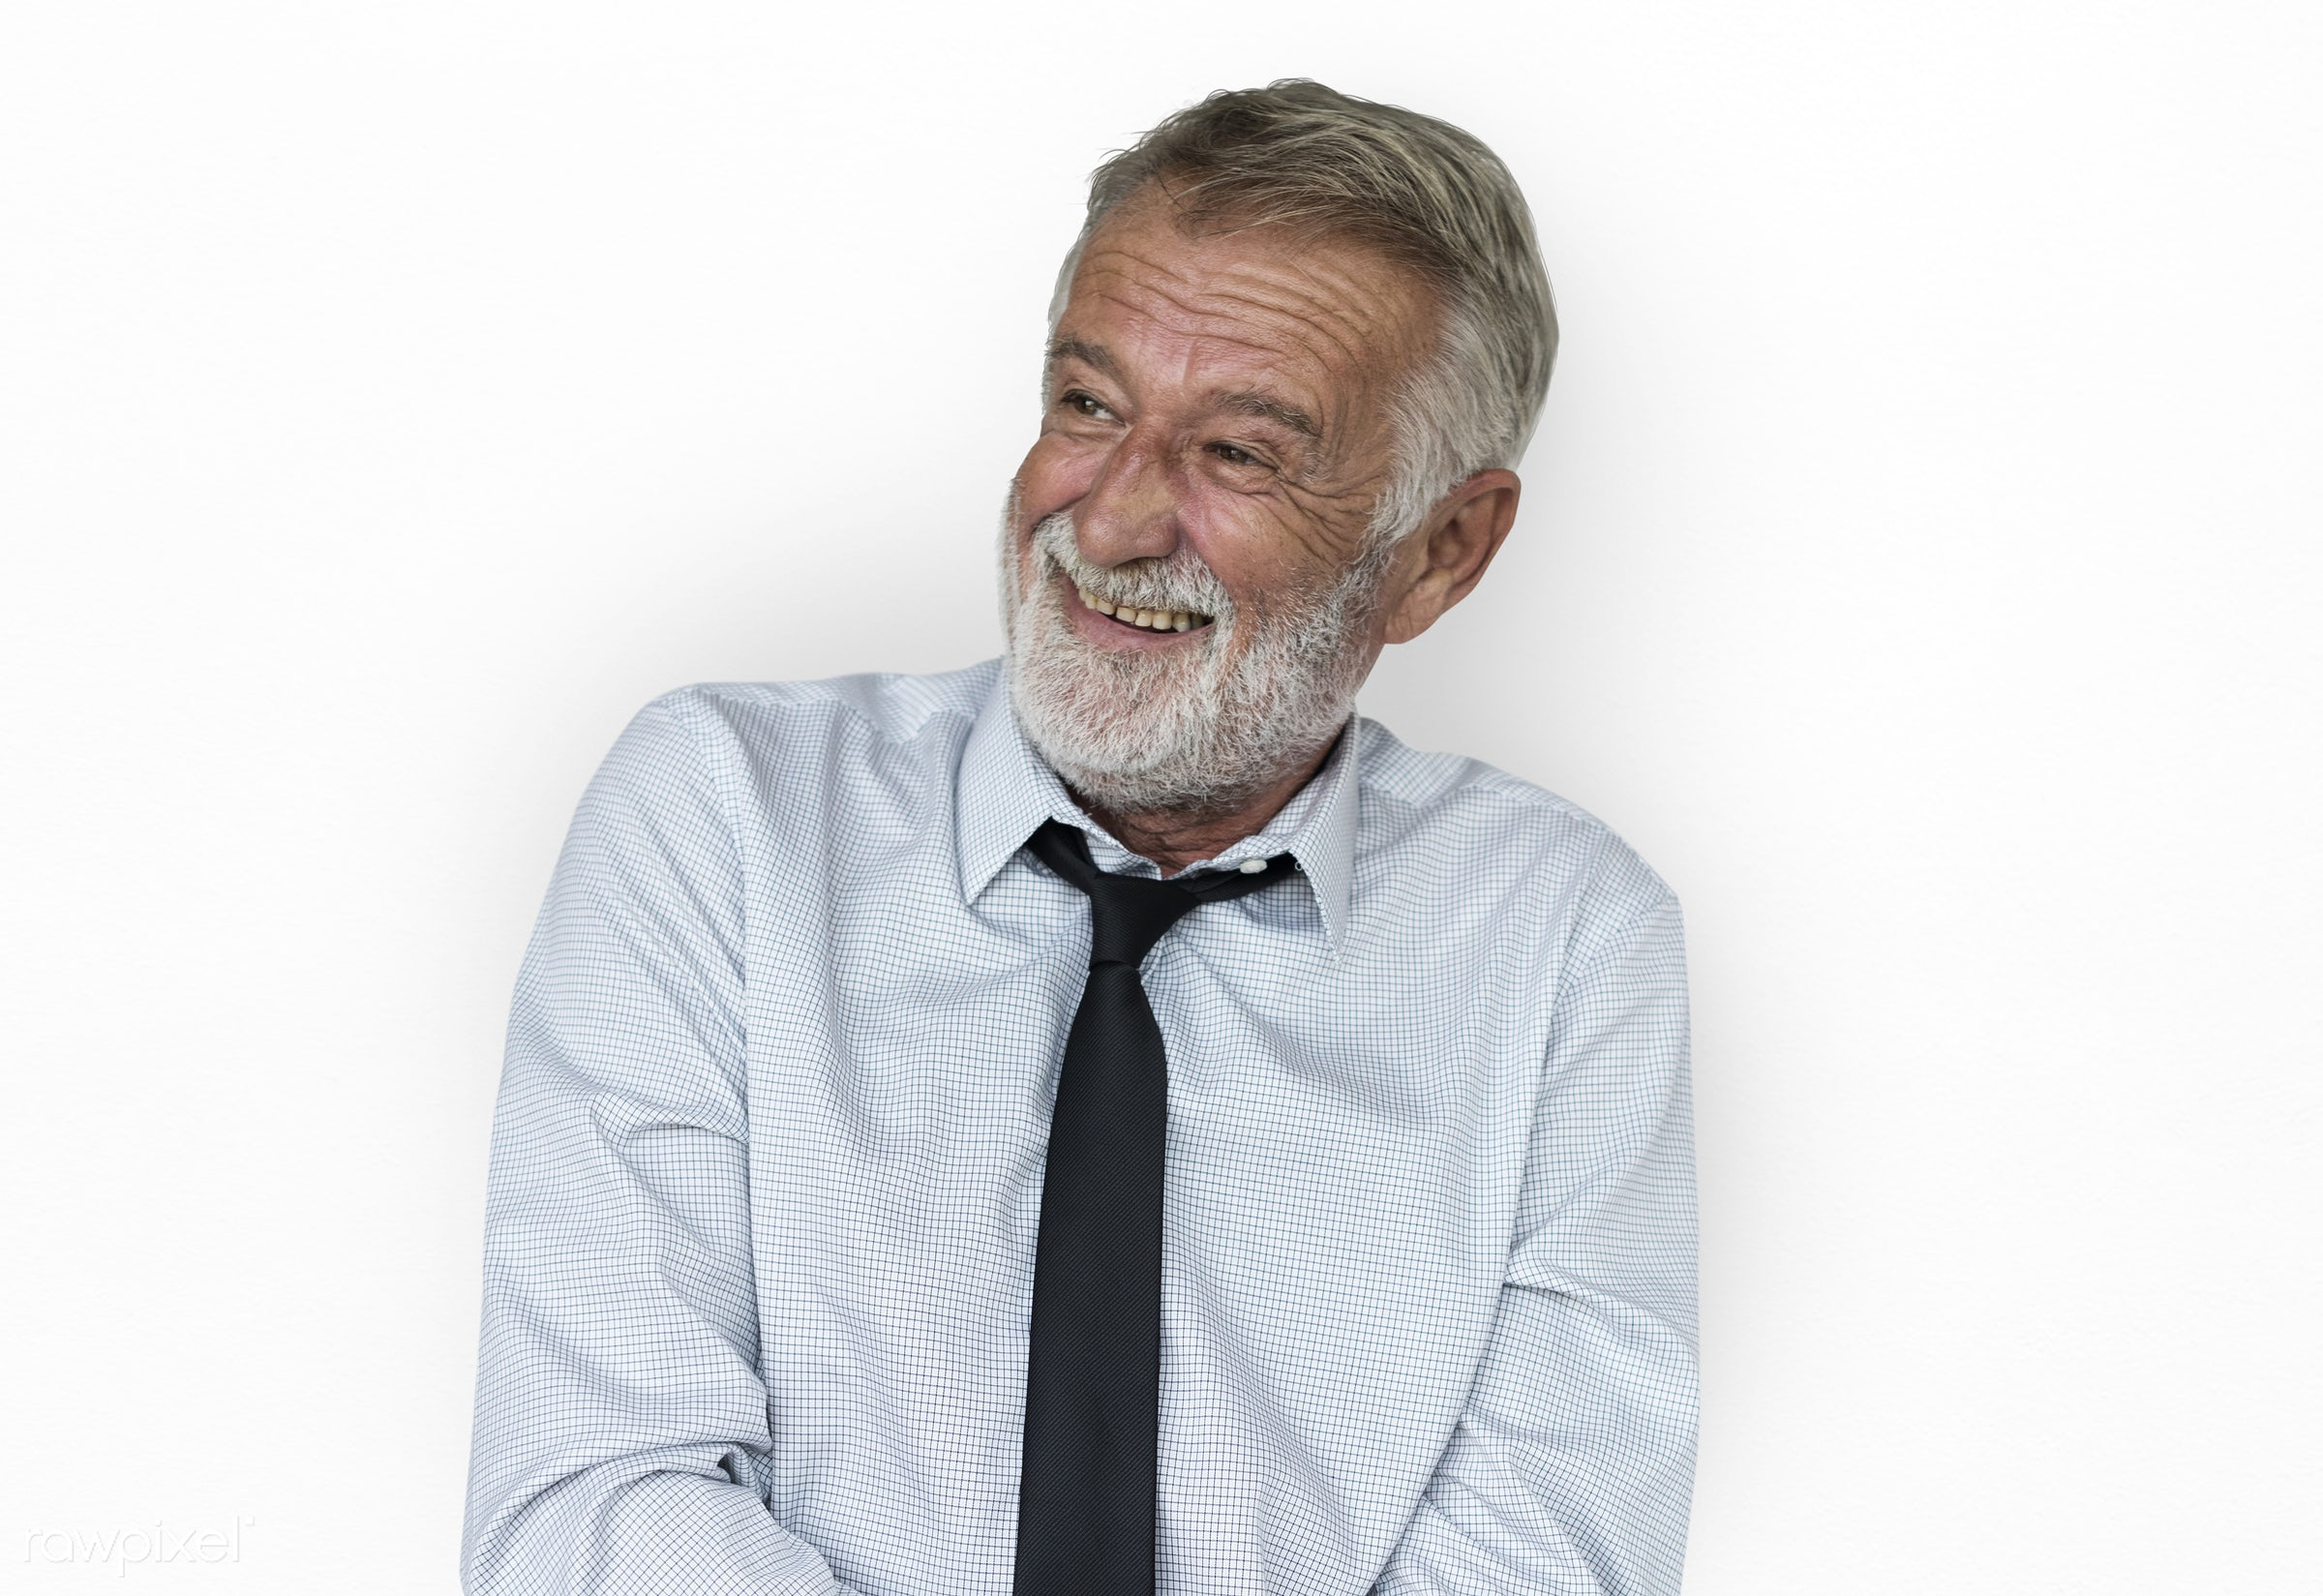 expression, studio, old, person, business wear, isolated on white, joy, people, caucasian, joyous, happy, smile, cheerful,...